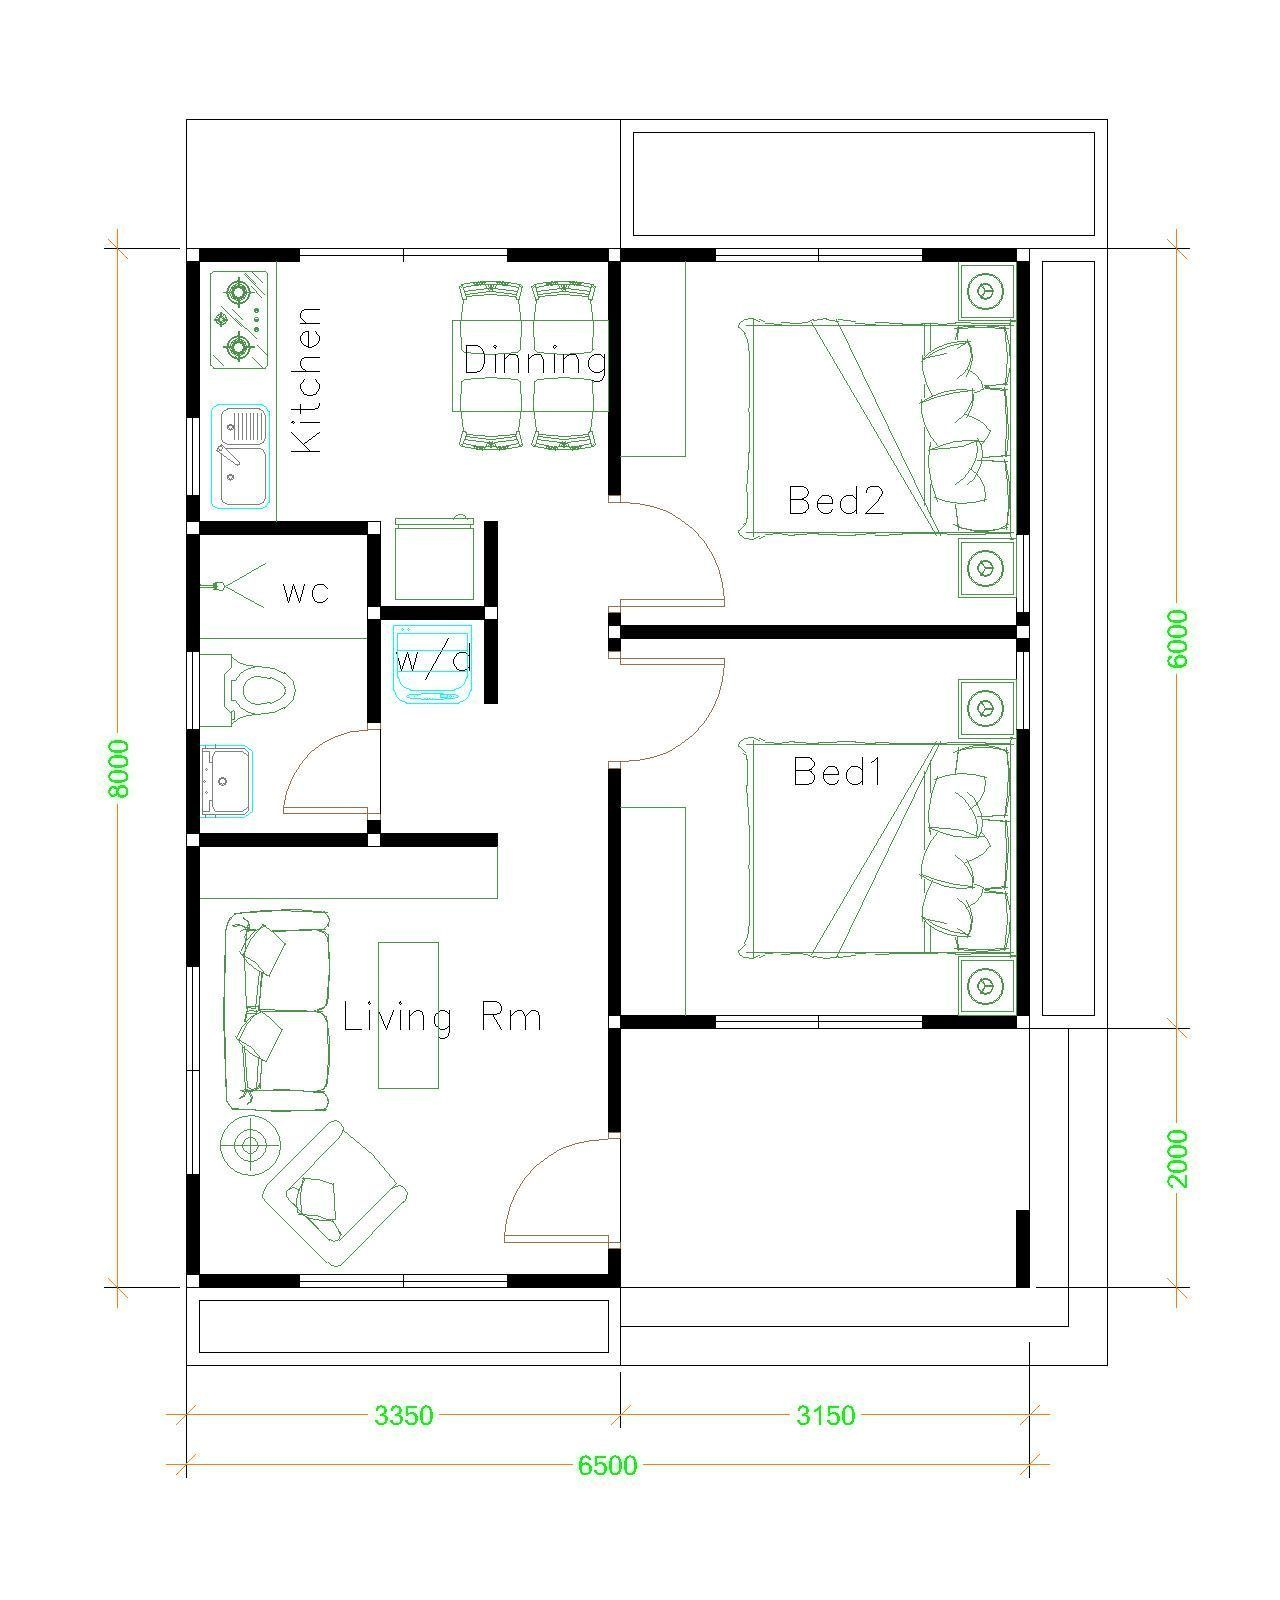 Small House Plans 6.5x8 with 2 Bedrooms Shed Roof - Sam ...